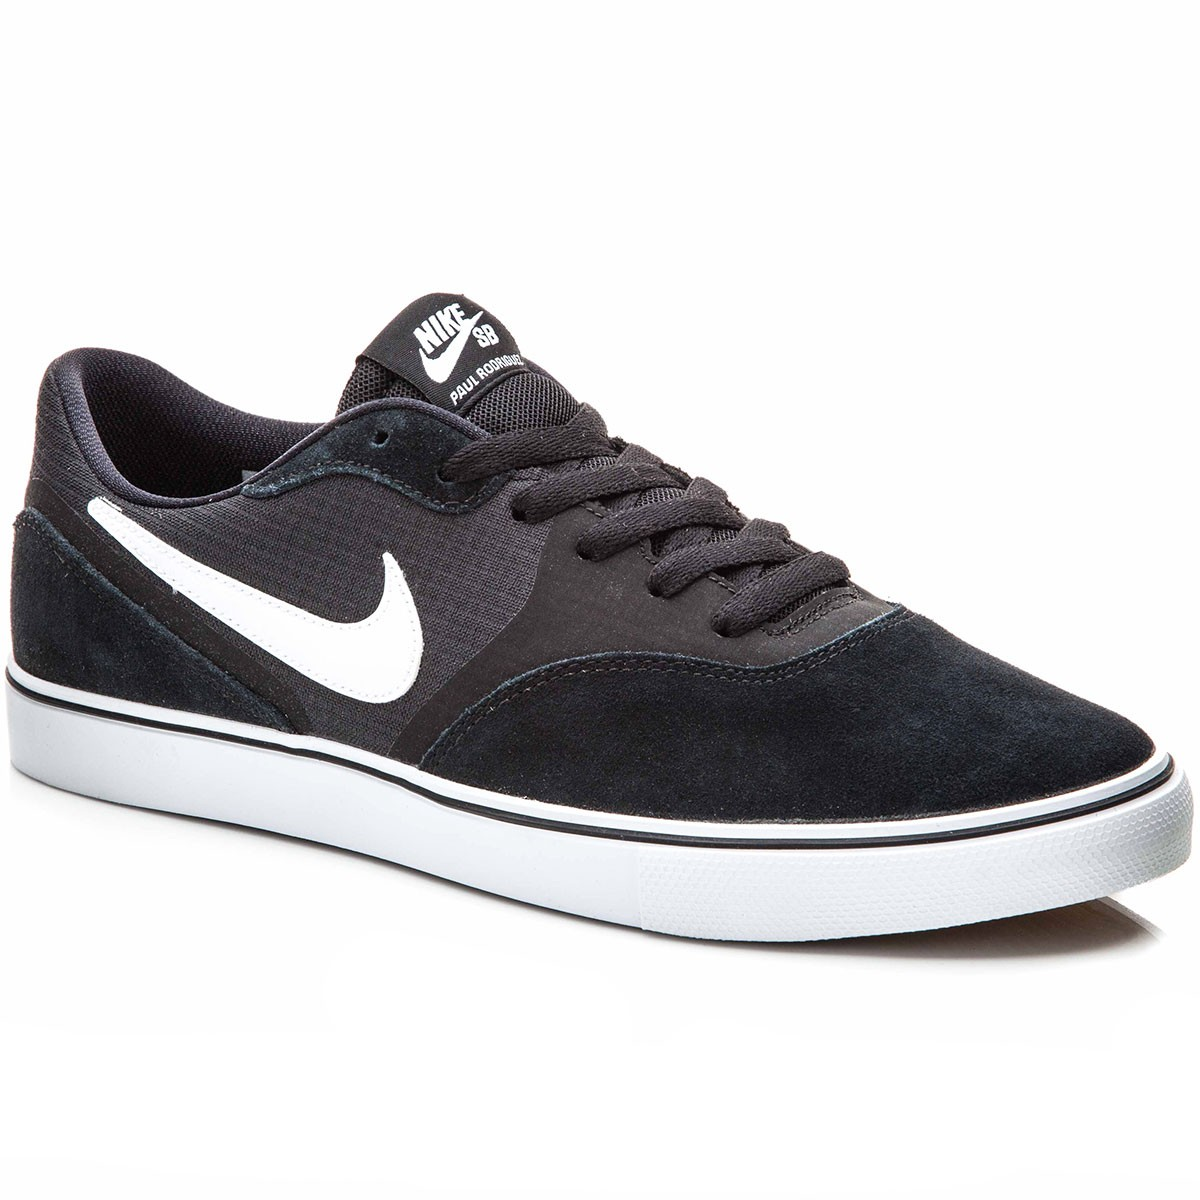 Nike Paul Rodriguez 9 VR Shoes - Black/Light Brown/White - 10.0